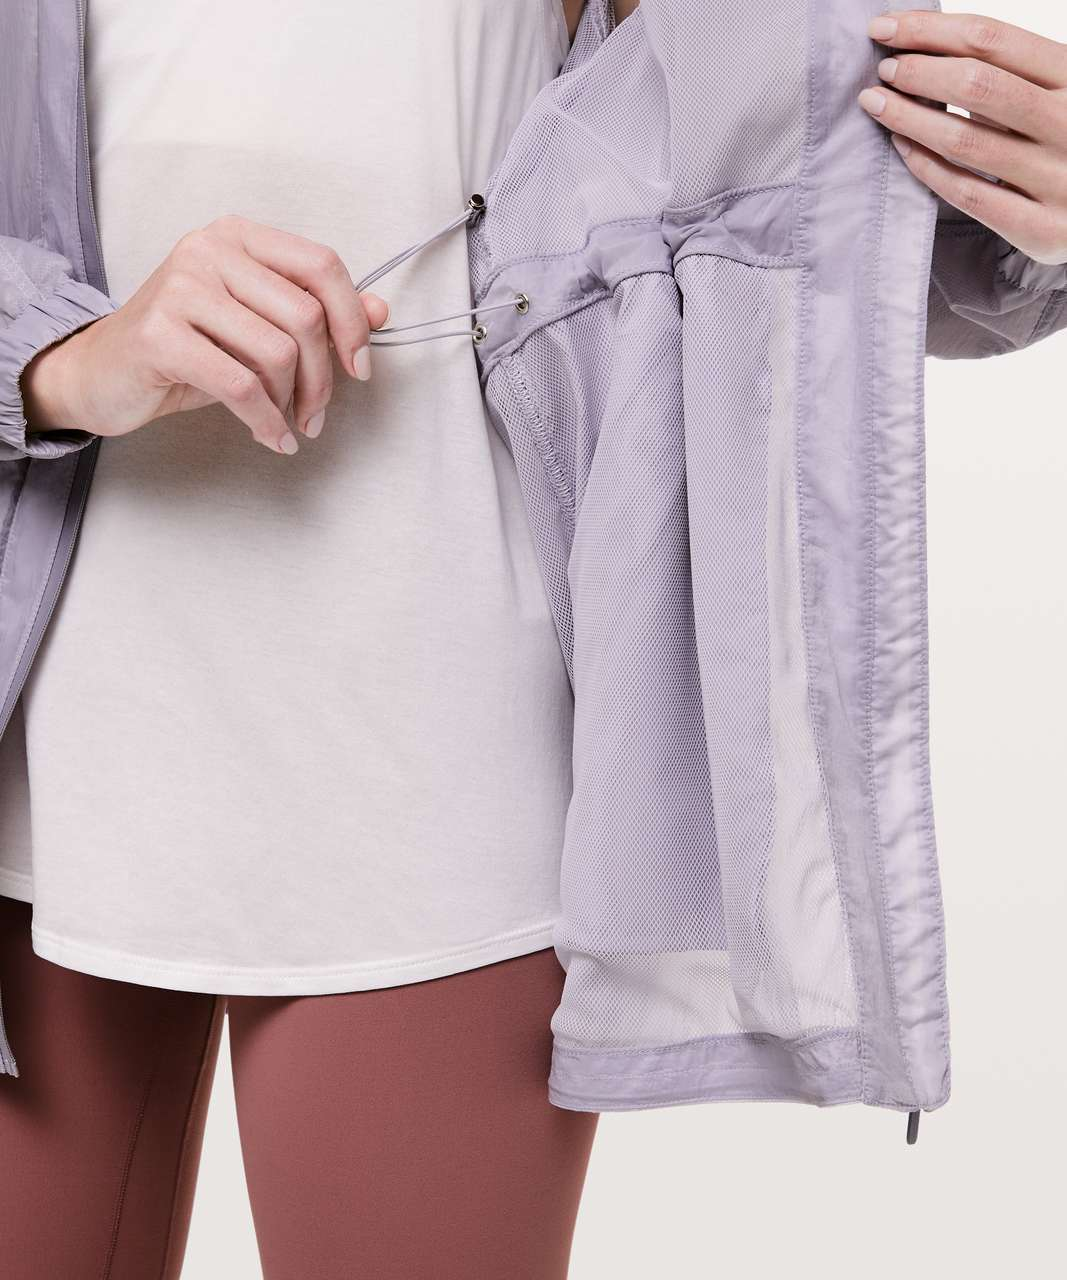 Lululemon In The Clear Jacket - Silver Lilac